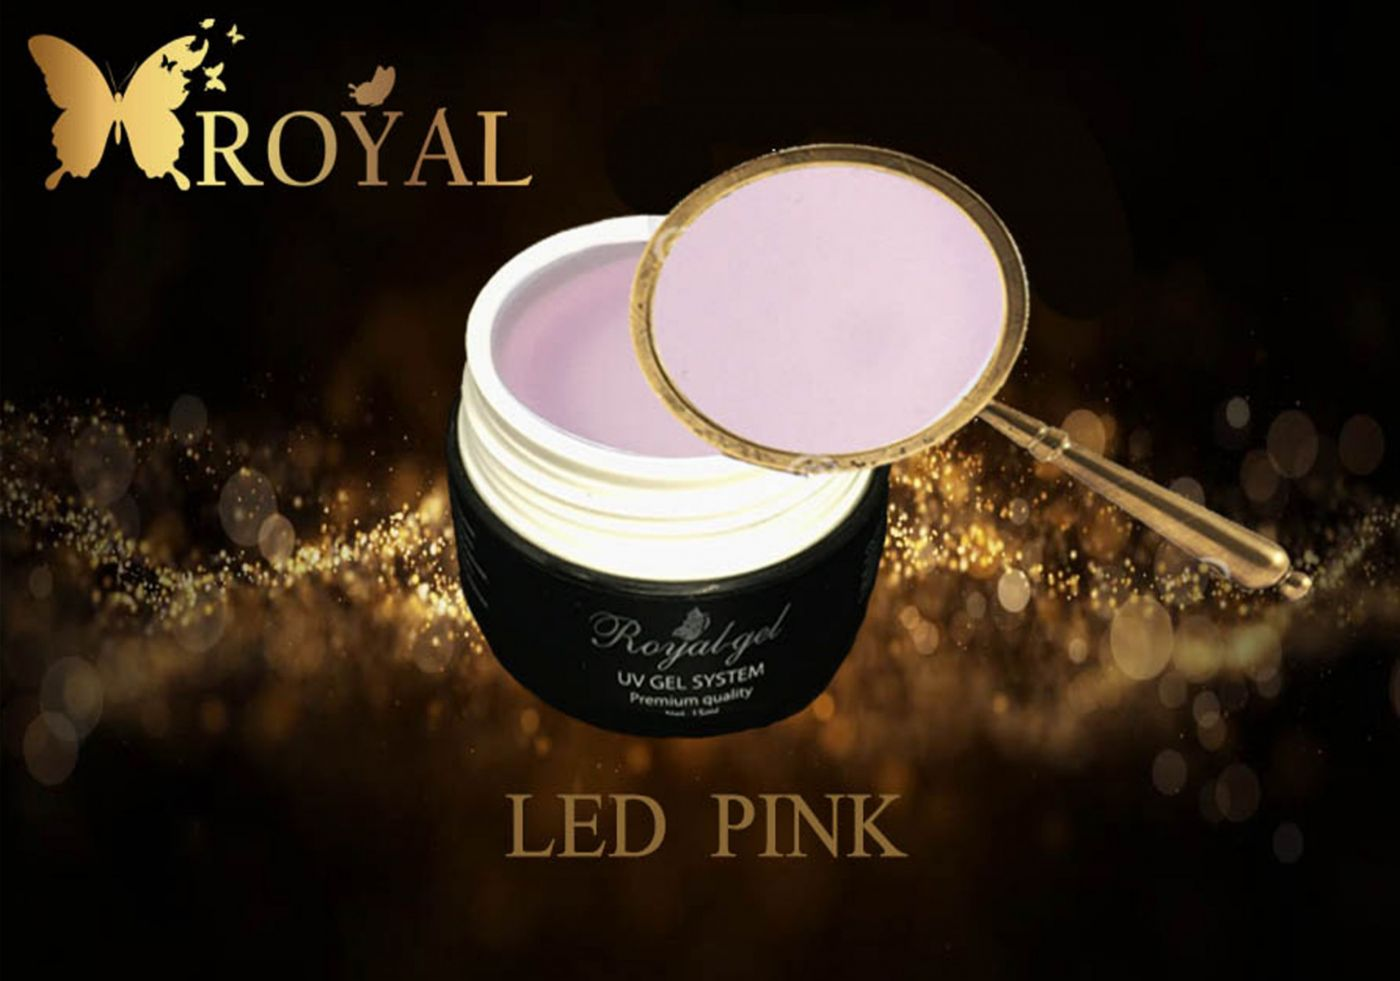 PINK LED ROYAL GEL